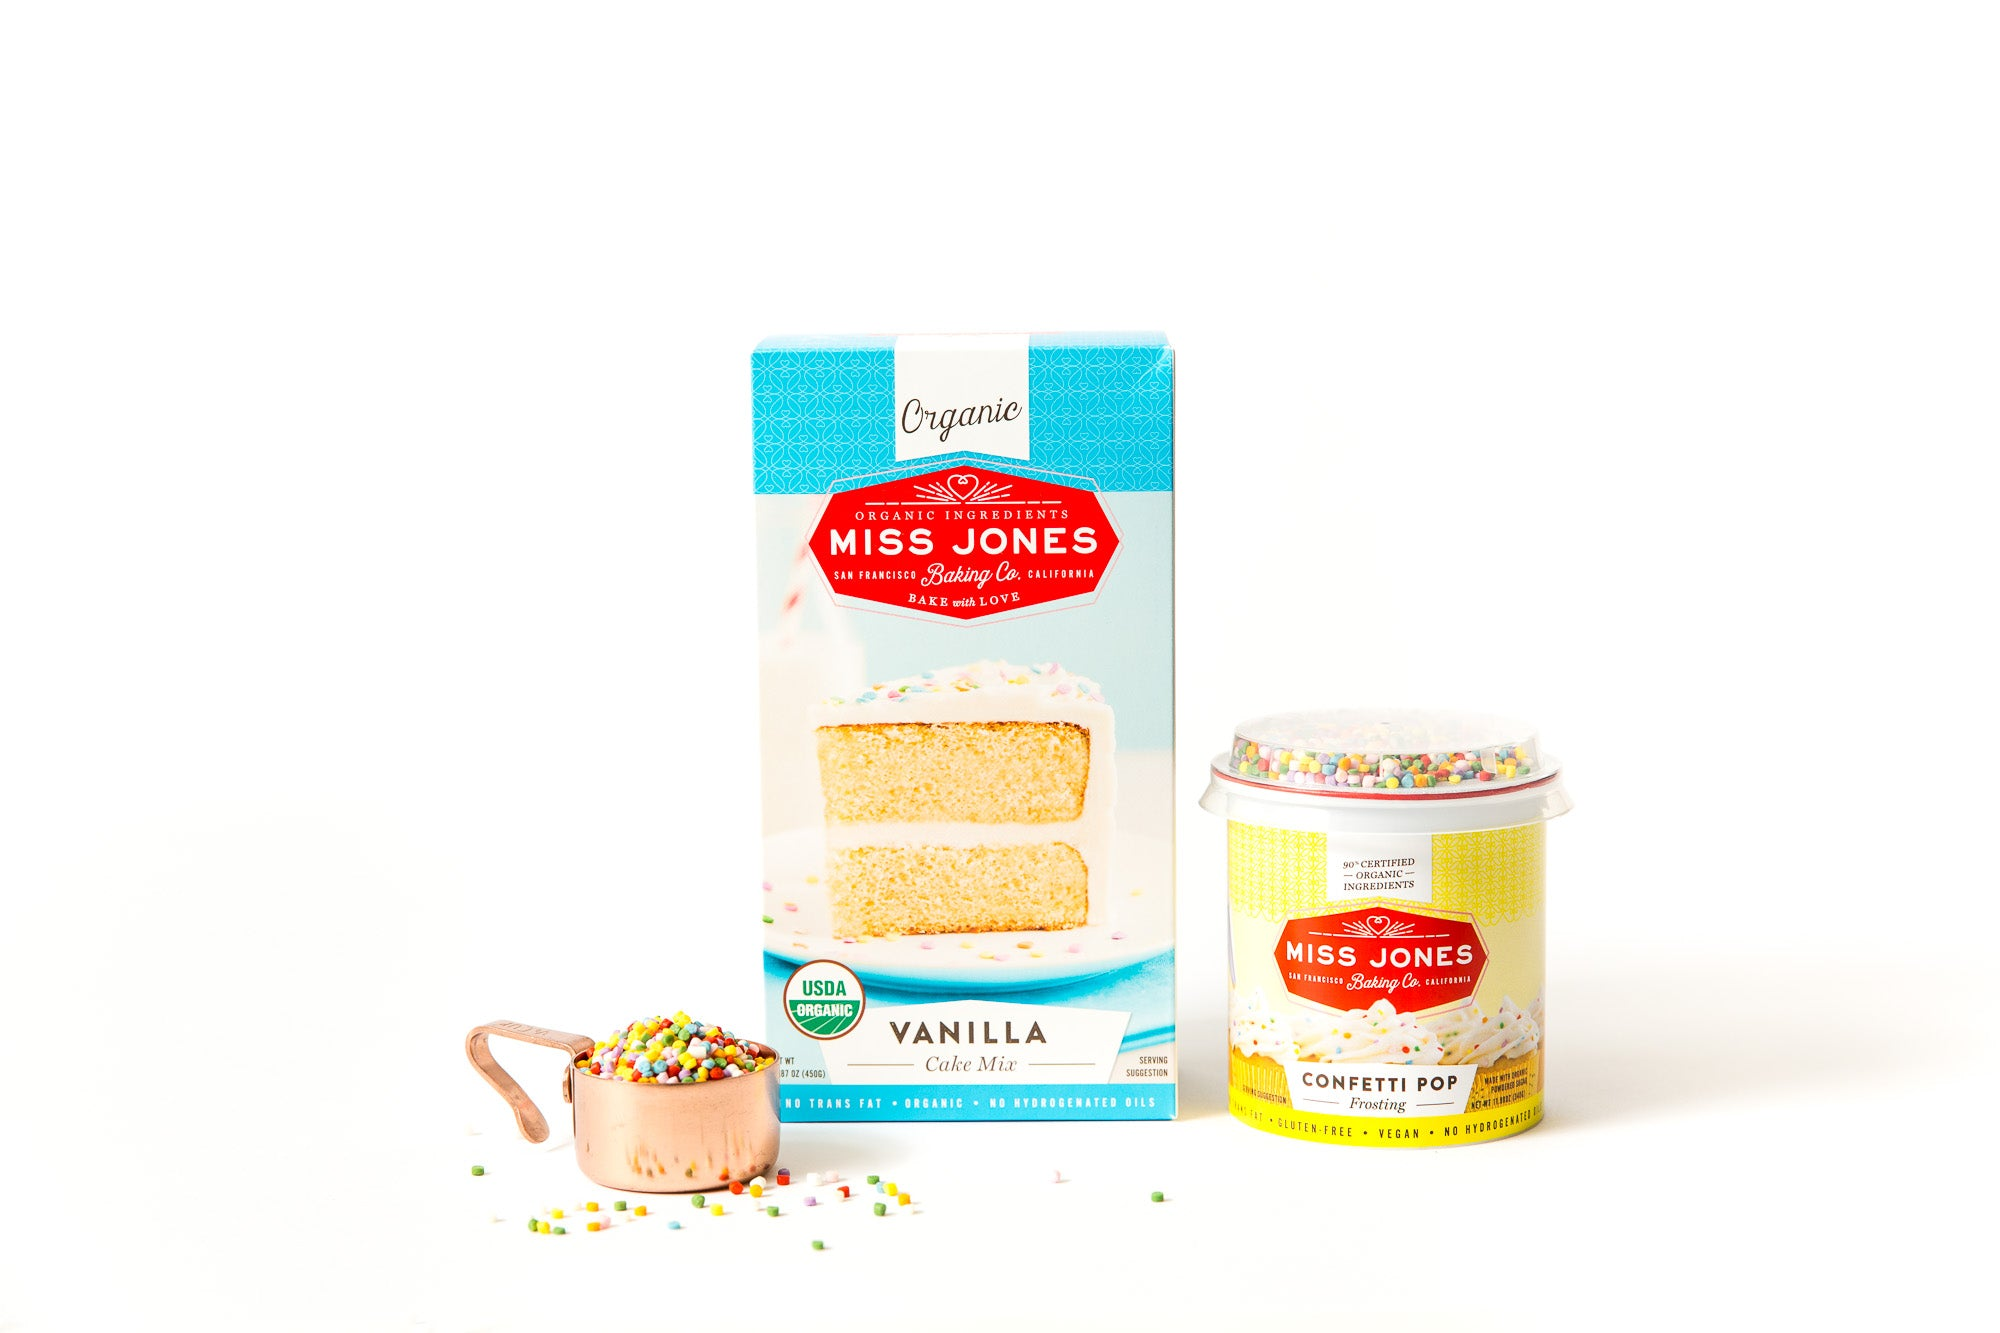 Image of Miss Jones Baking Co Vanilla Cake Mix and Confetti Pop Frosting